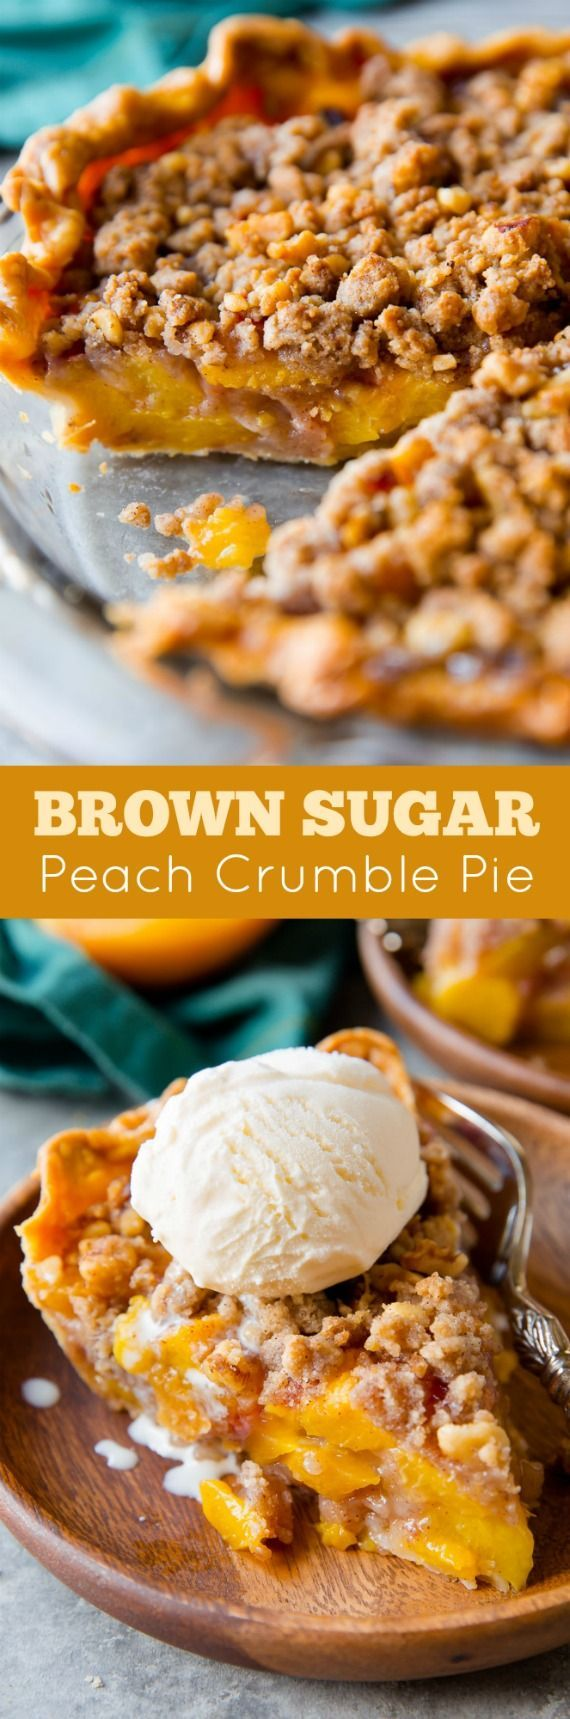 With brown sugar and cinnamon, this peach crumble pie is my favorite. The filling holds its shape and the crust is buttery and flaky!